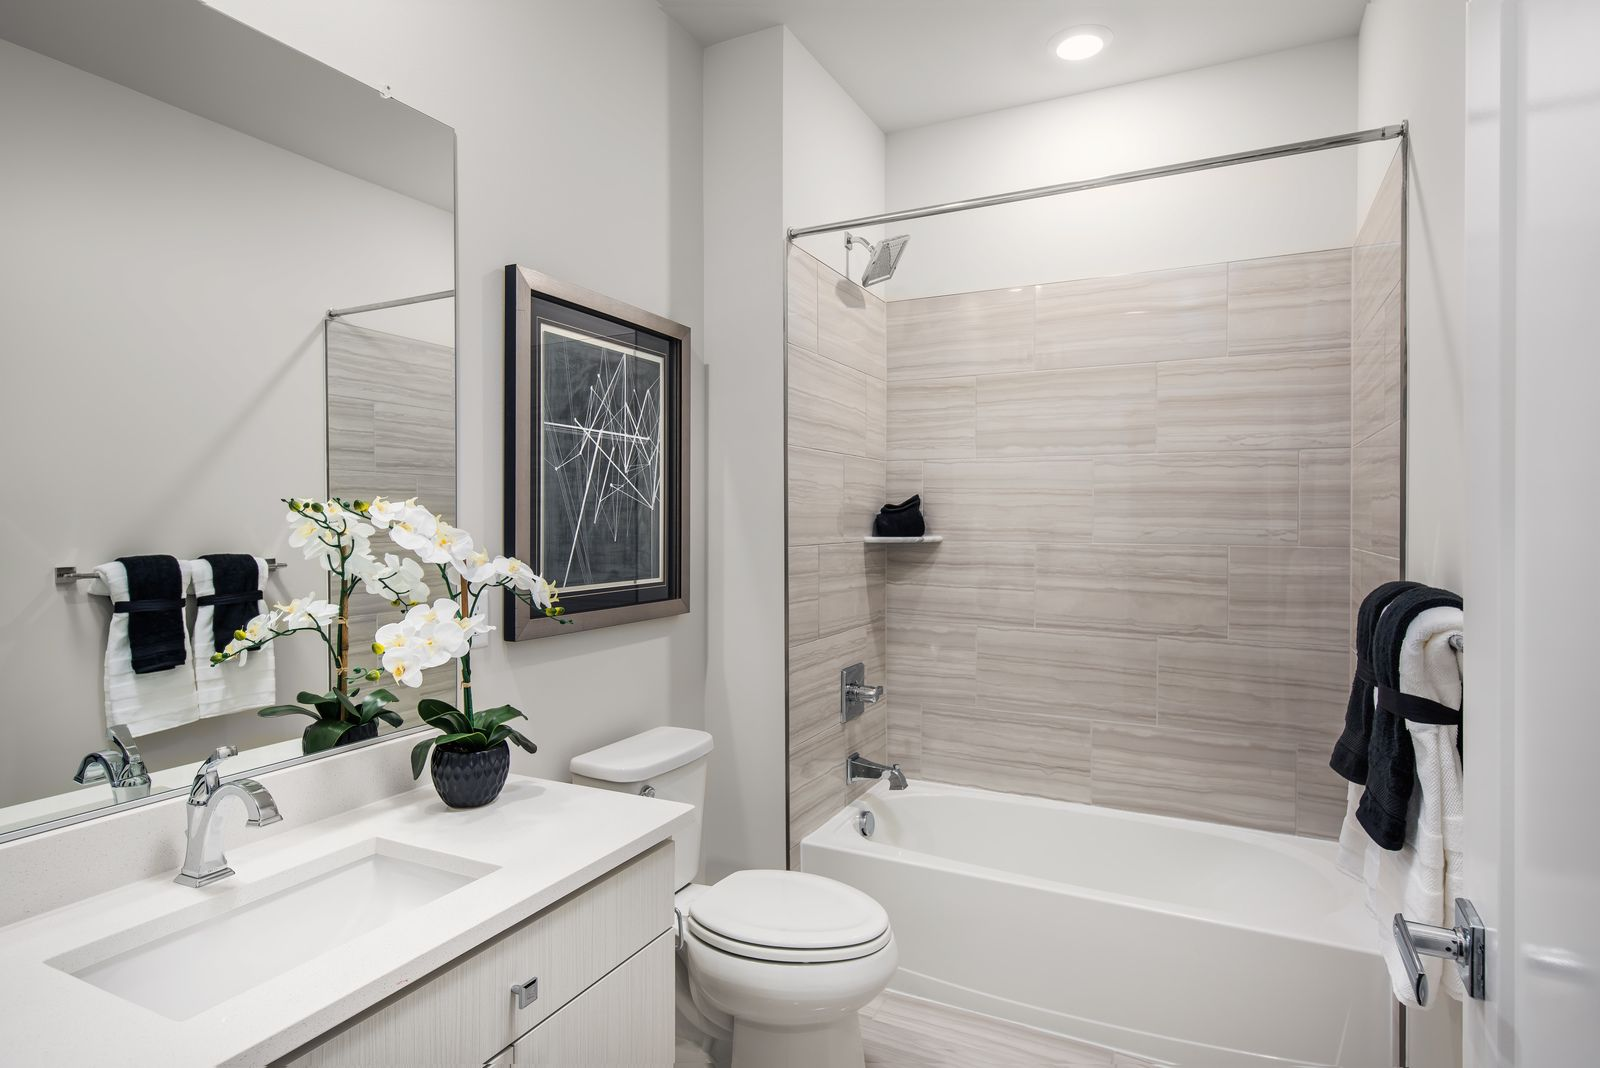 Bathroom featured in the 2 Bedroom 2.5 Bath By NVHomes in Washington, VA